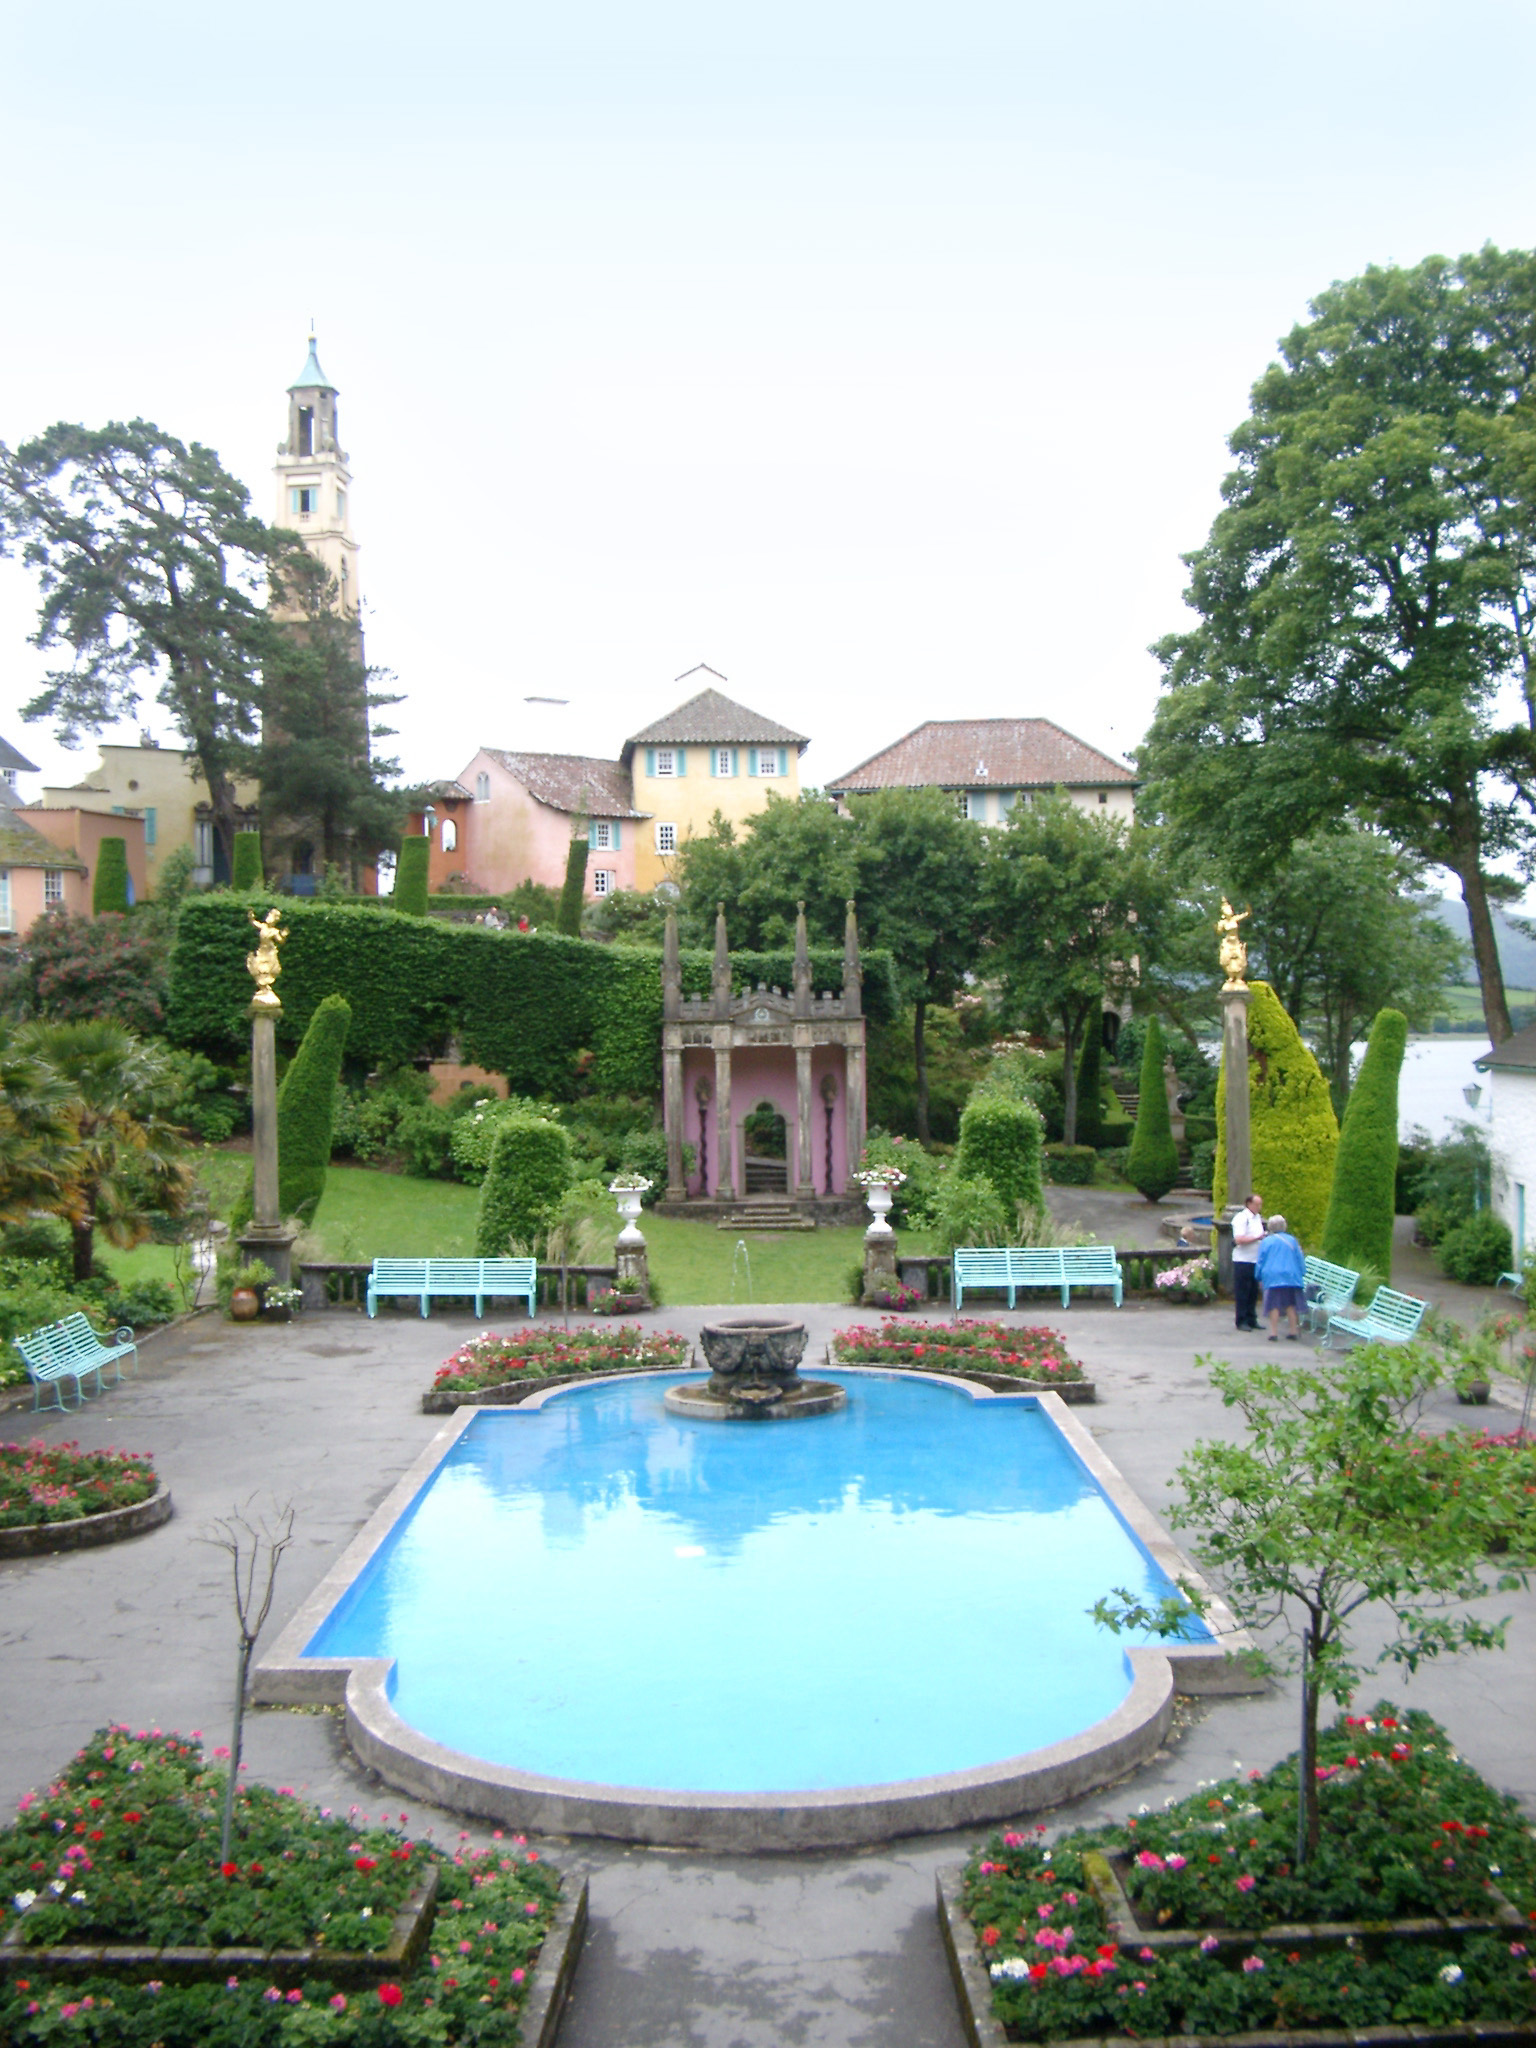 Swimming pool in Portmeirion, Wales, a romantic village styled on an Italian town and a popular tourist attraction